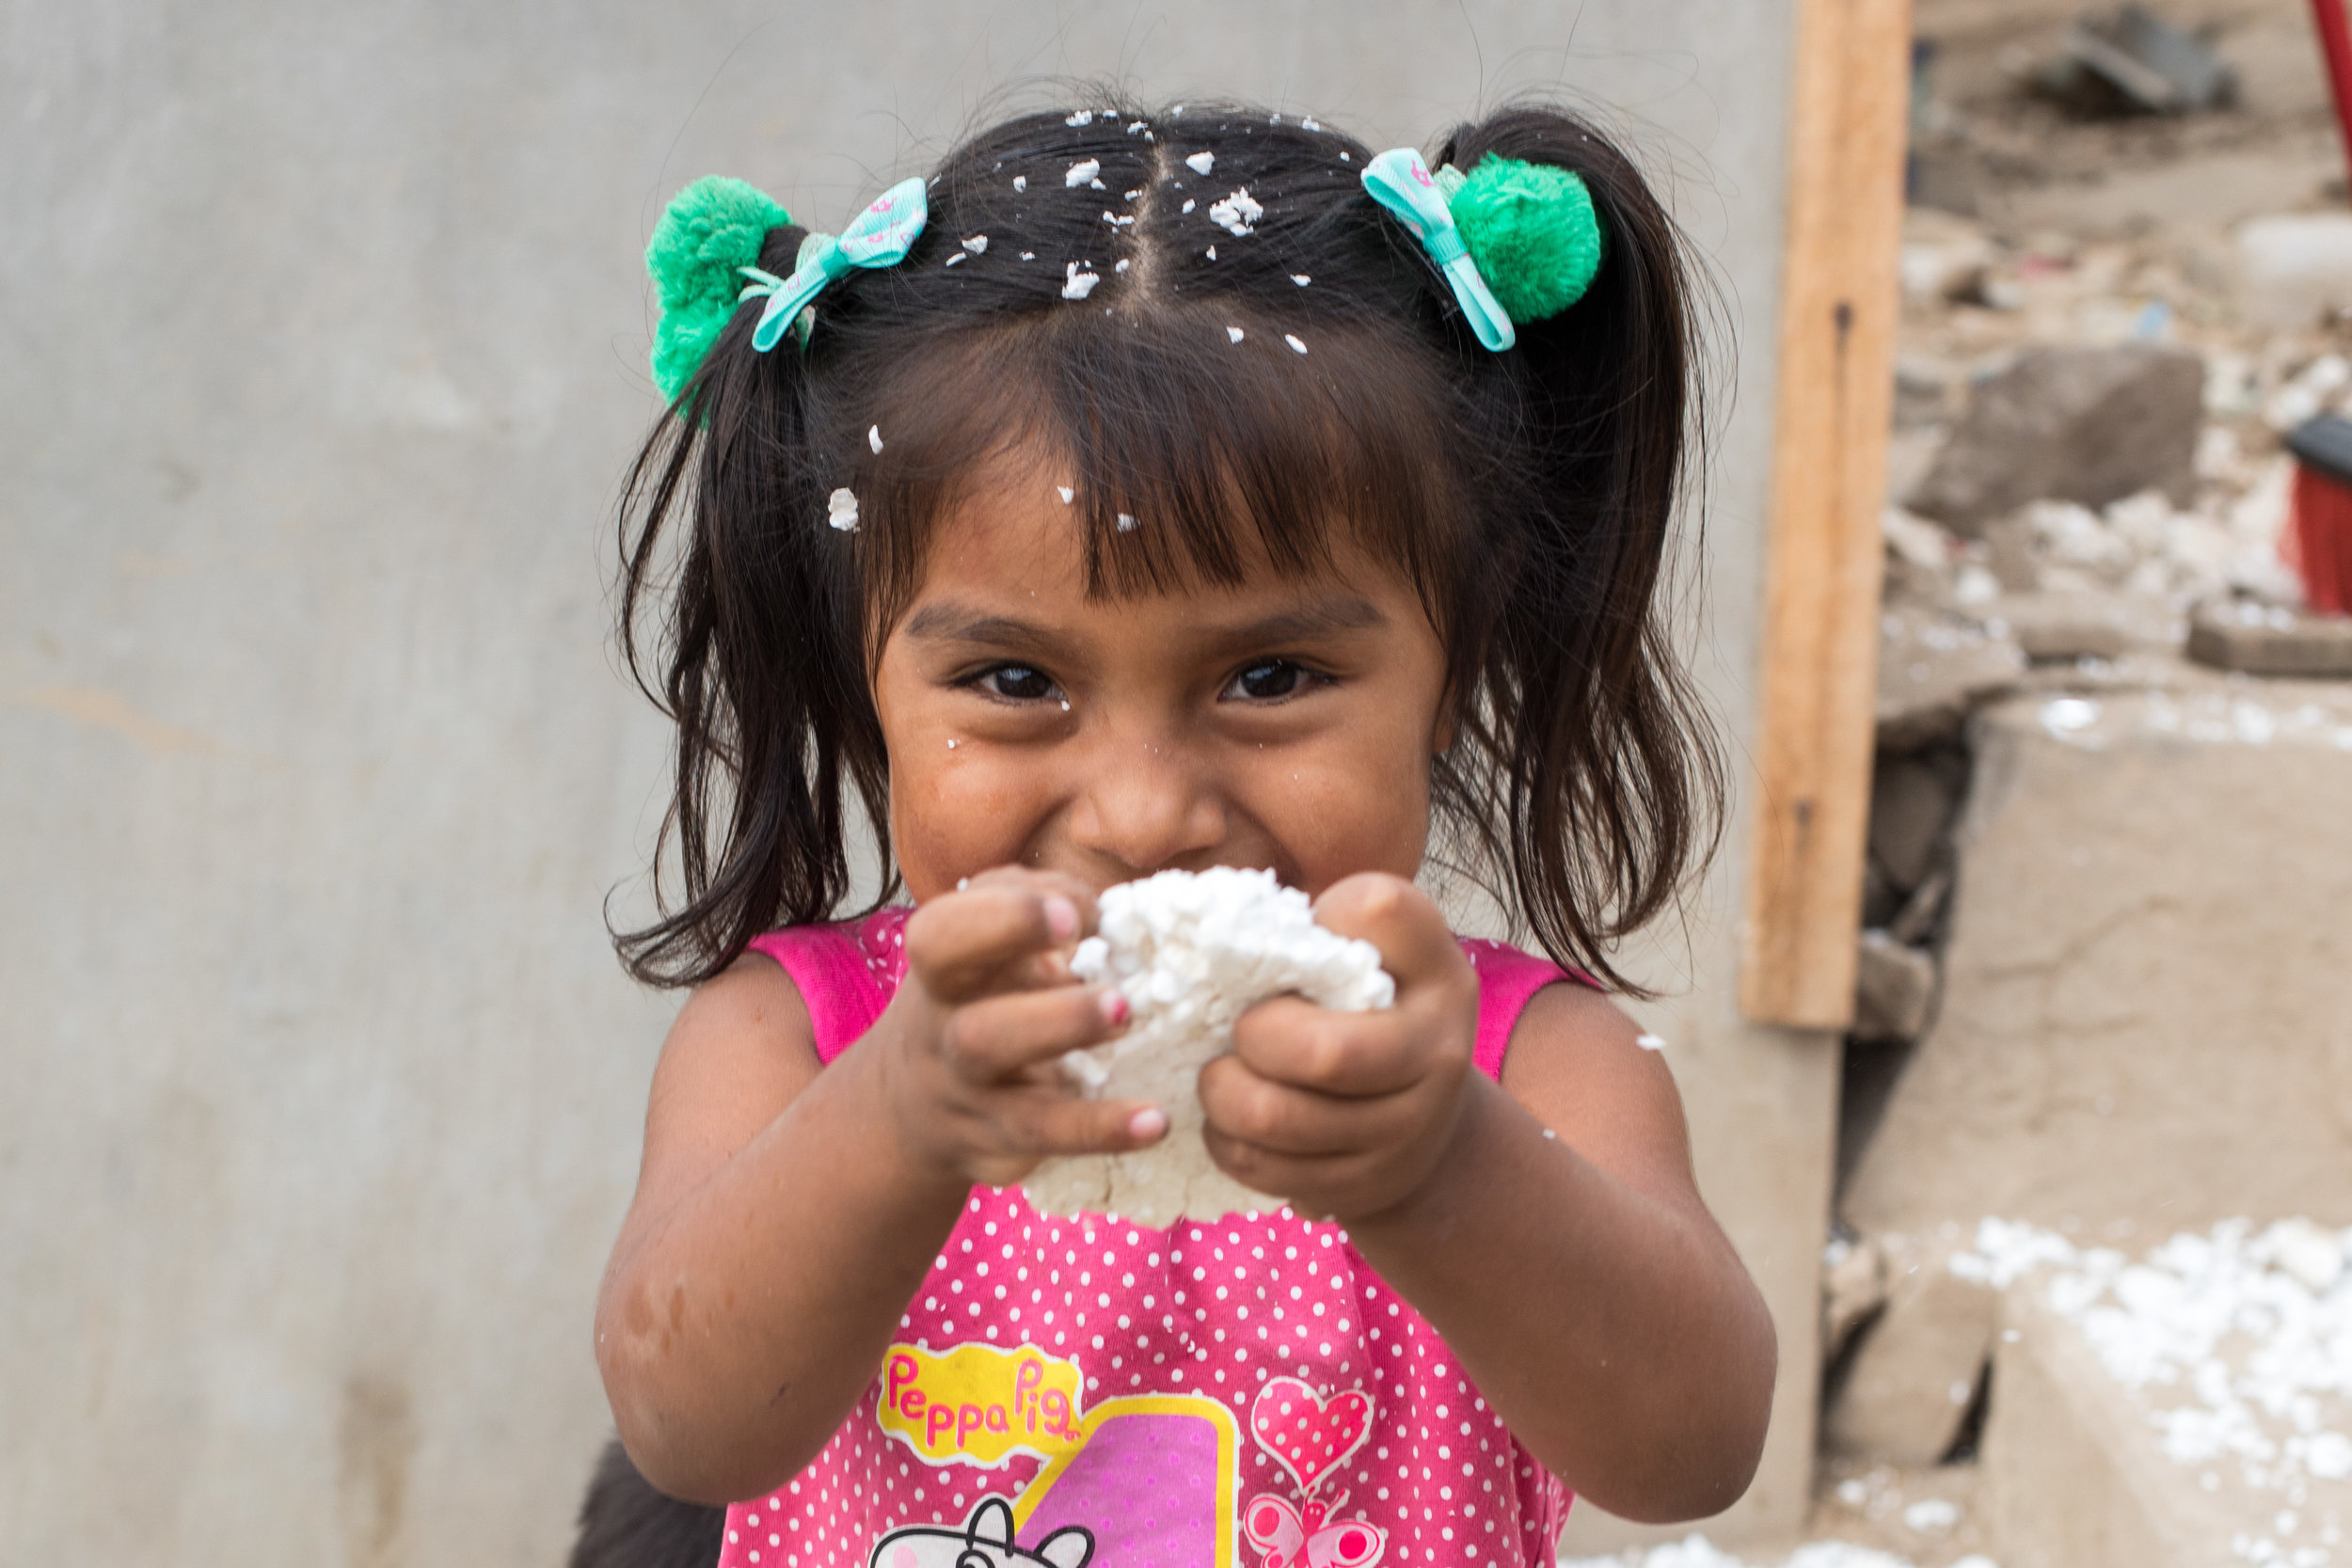 A cute Peruvian girl portrait by Geraint Rowland Photography.